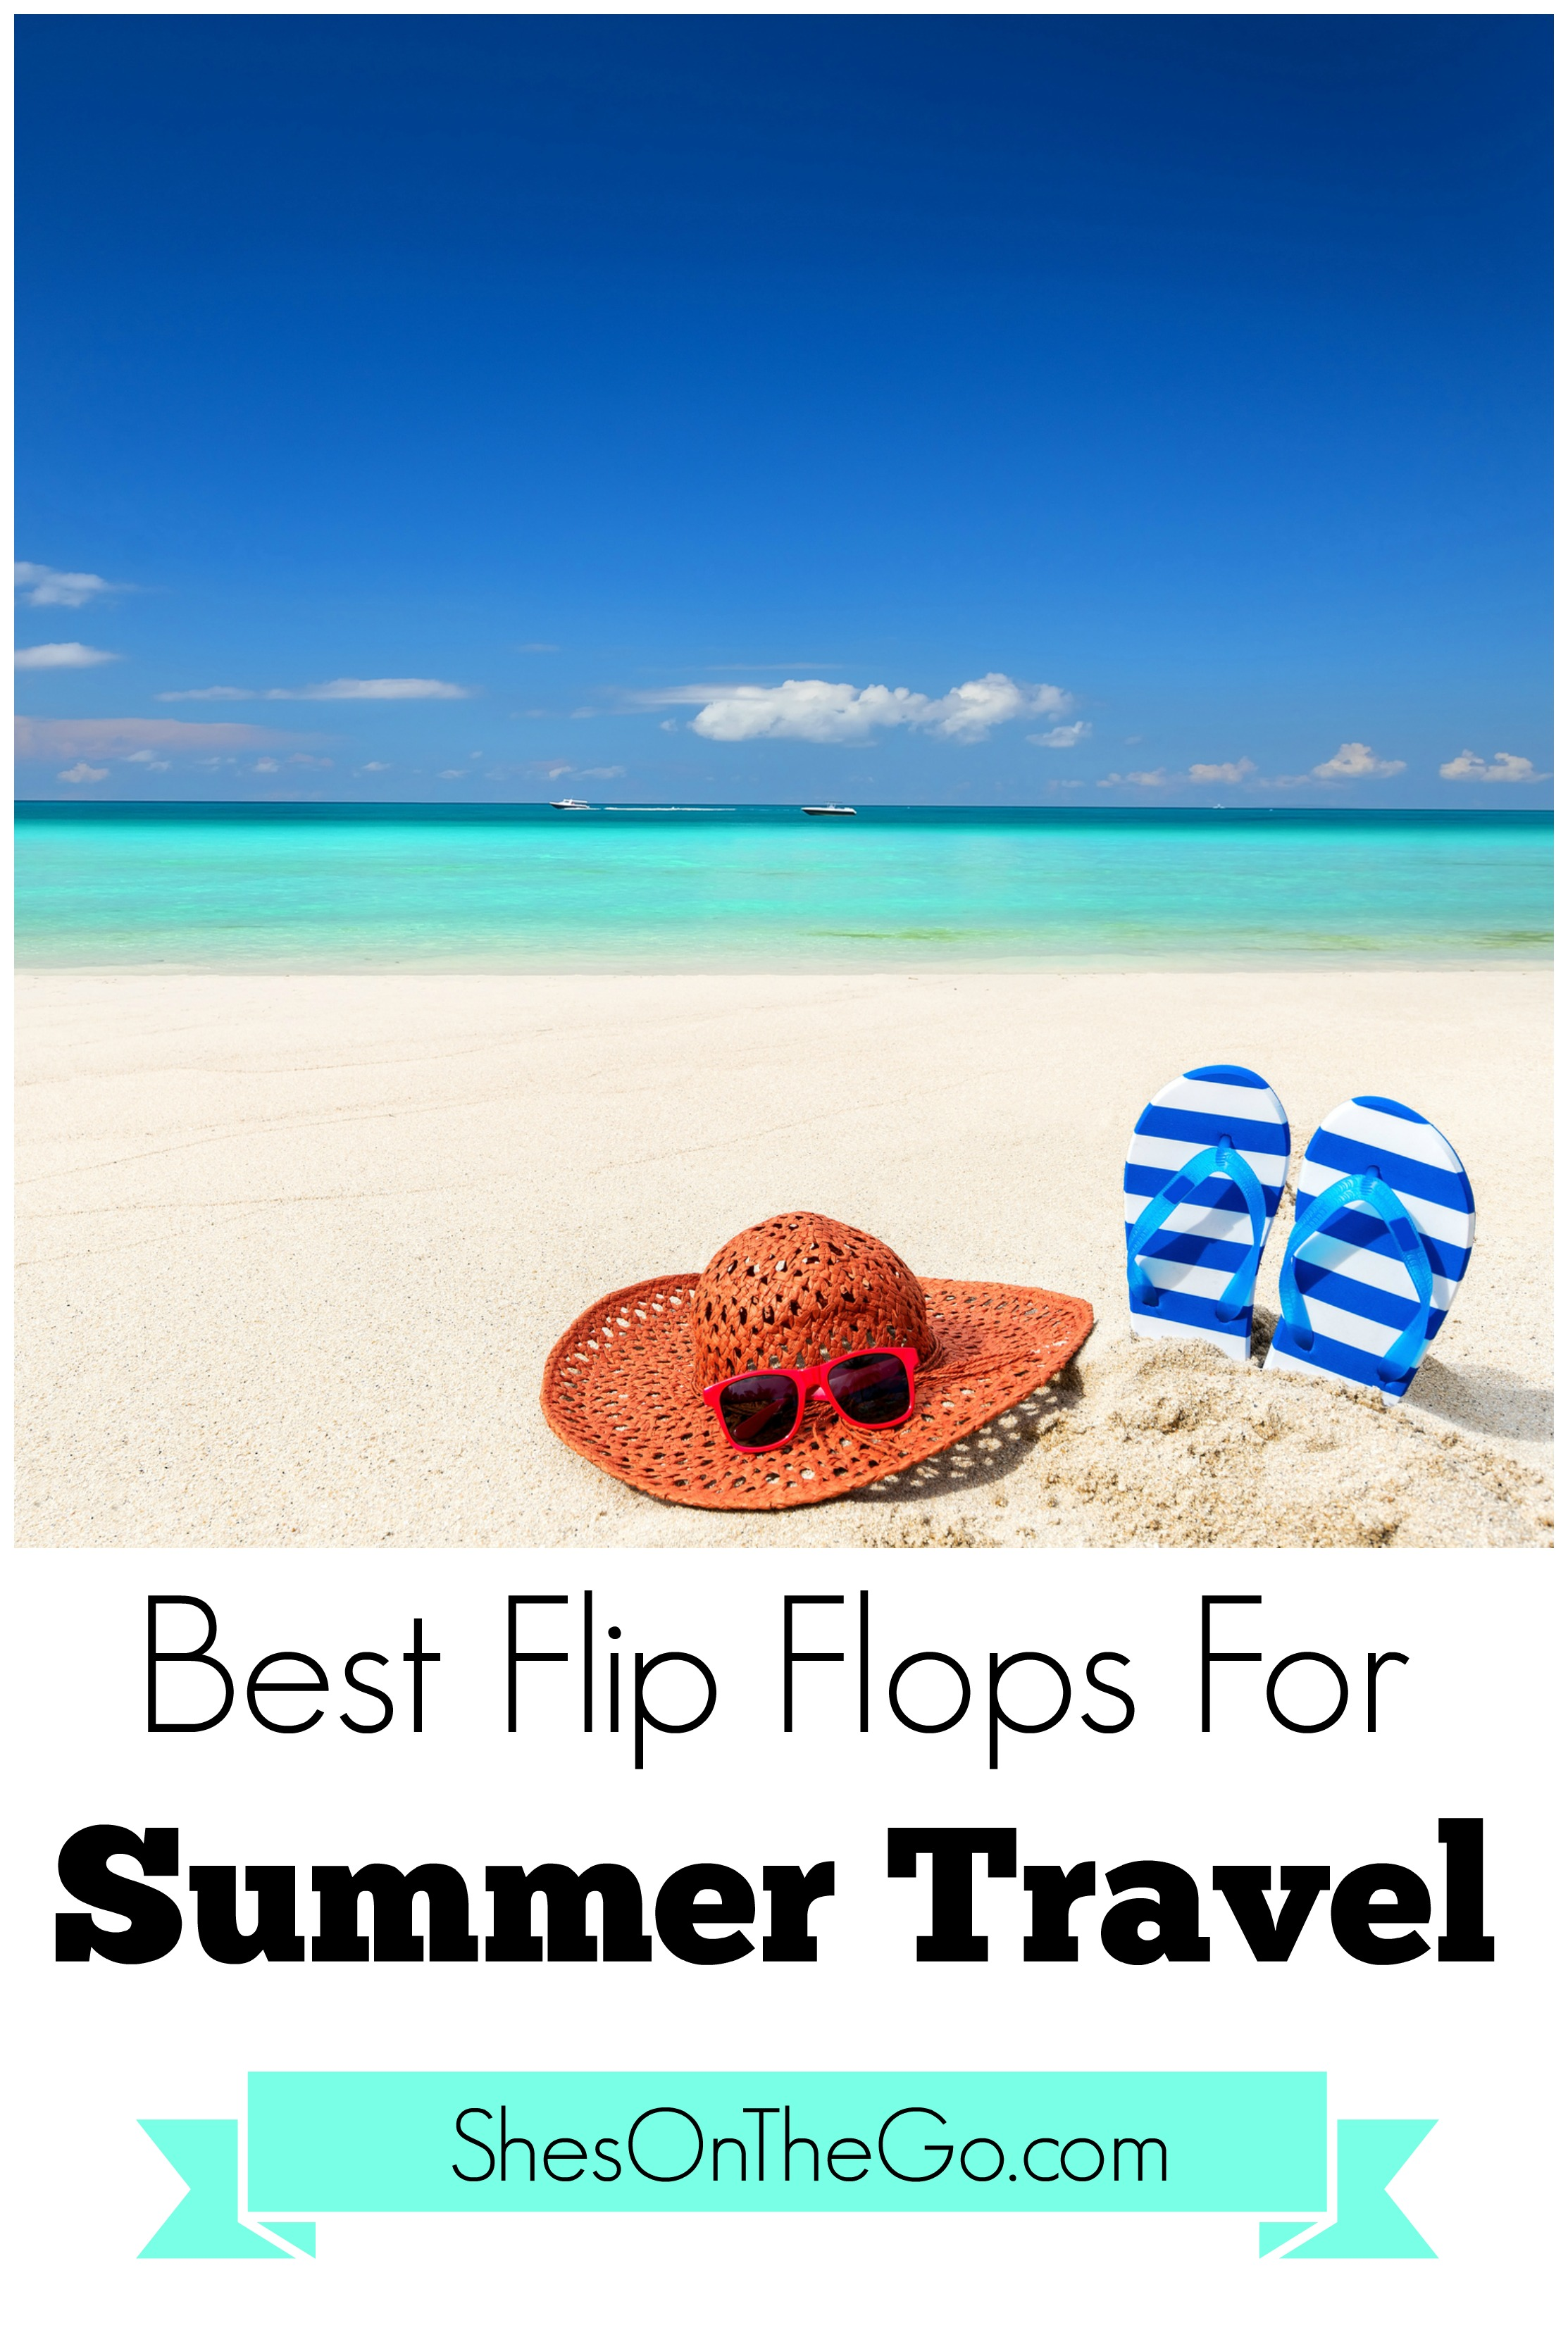 The Summer Season Is Upon Us And You Know What That Means?!! Time To Break  Out The Flip Flops And Let Our Toes Bask In The Glorious Sunshine!